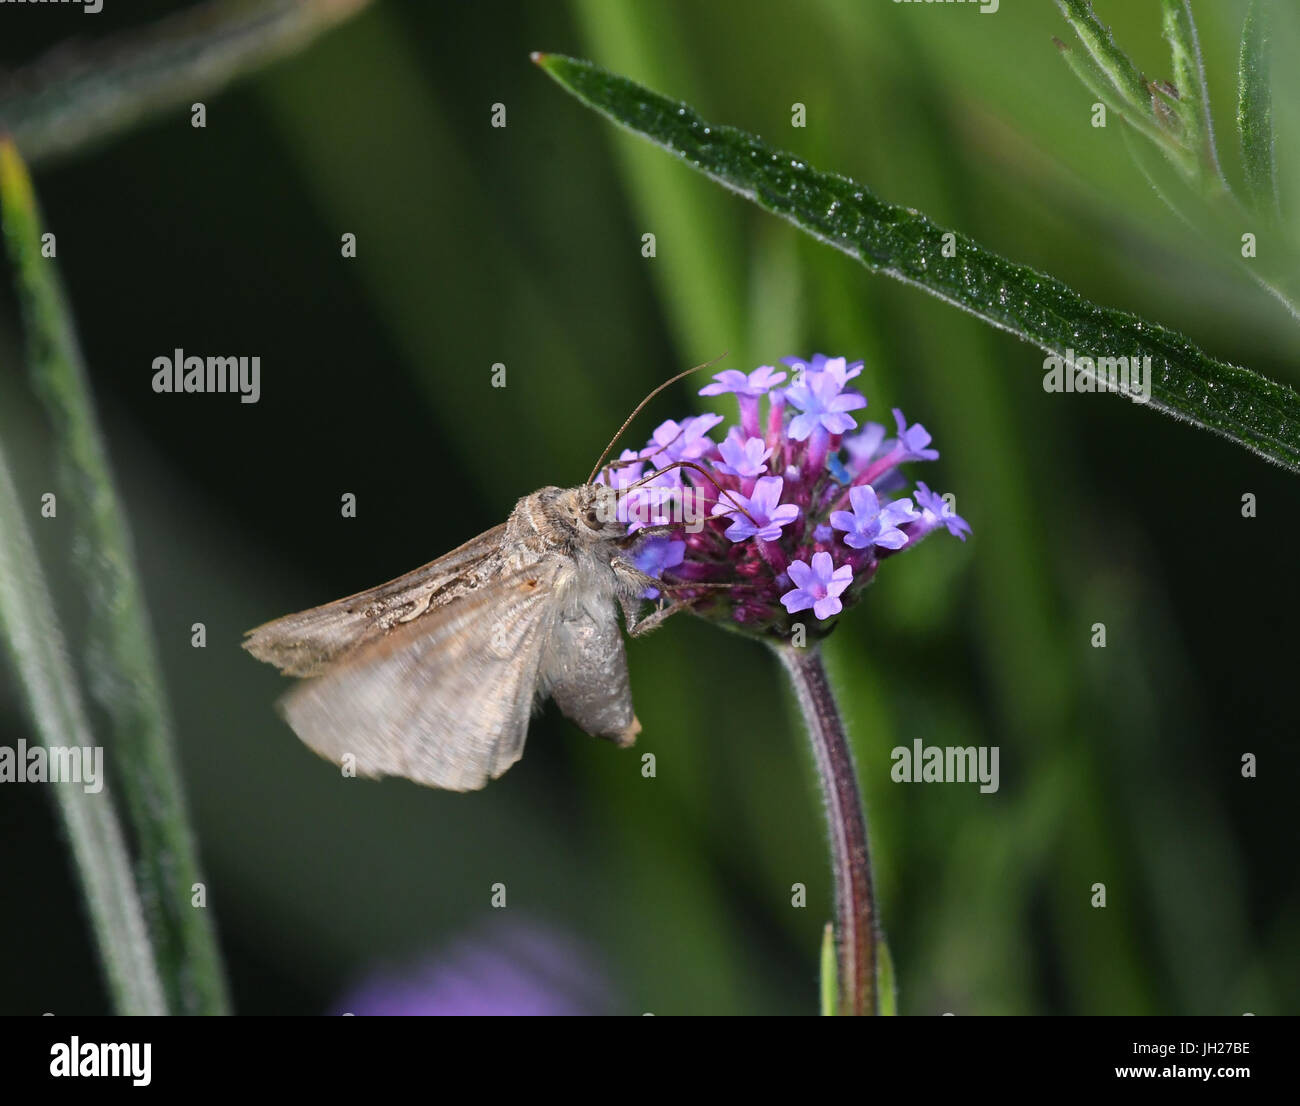 Night butterfly feeding on flowers of Verbena bonariensis - Stock Image